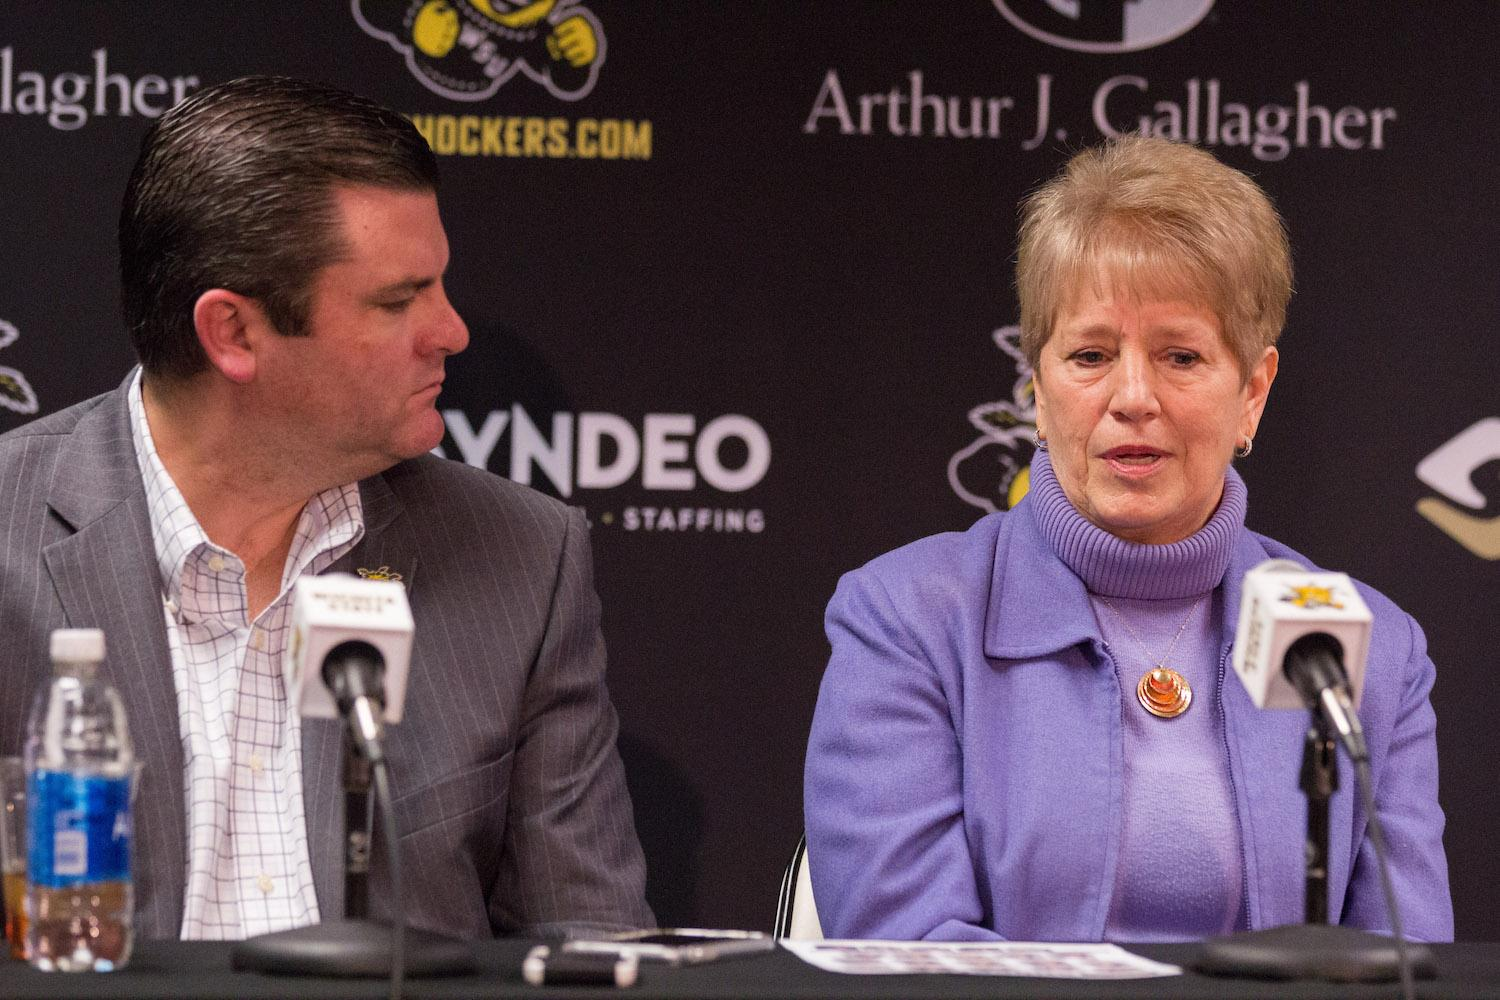 New Wichita State women's basketball coach, Linda Hargove, speaks at the press conference on Monday afternoon about accepting the position at WSU. Hargrove will finish the season as head coach.